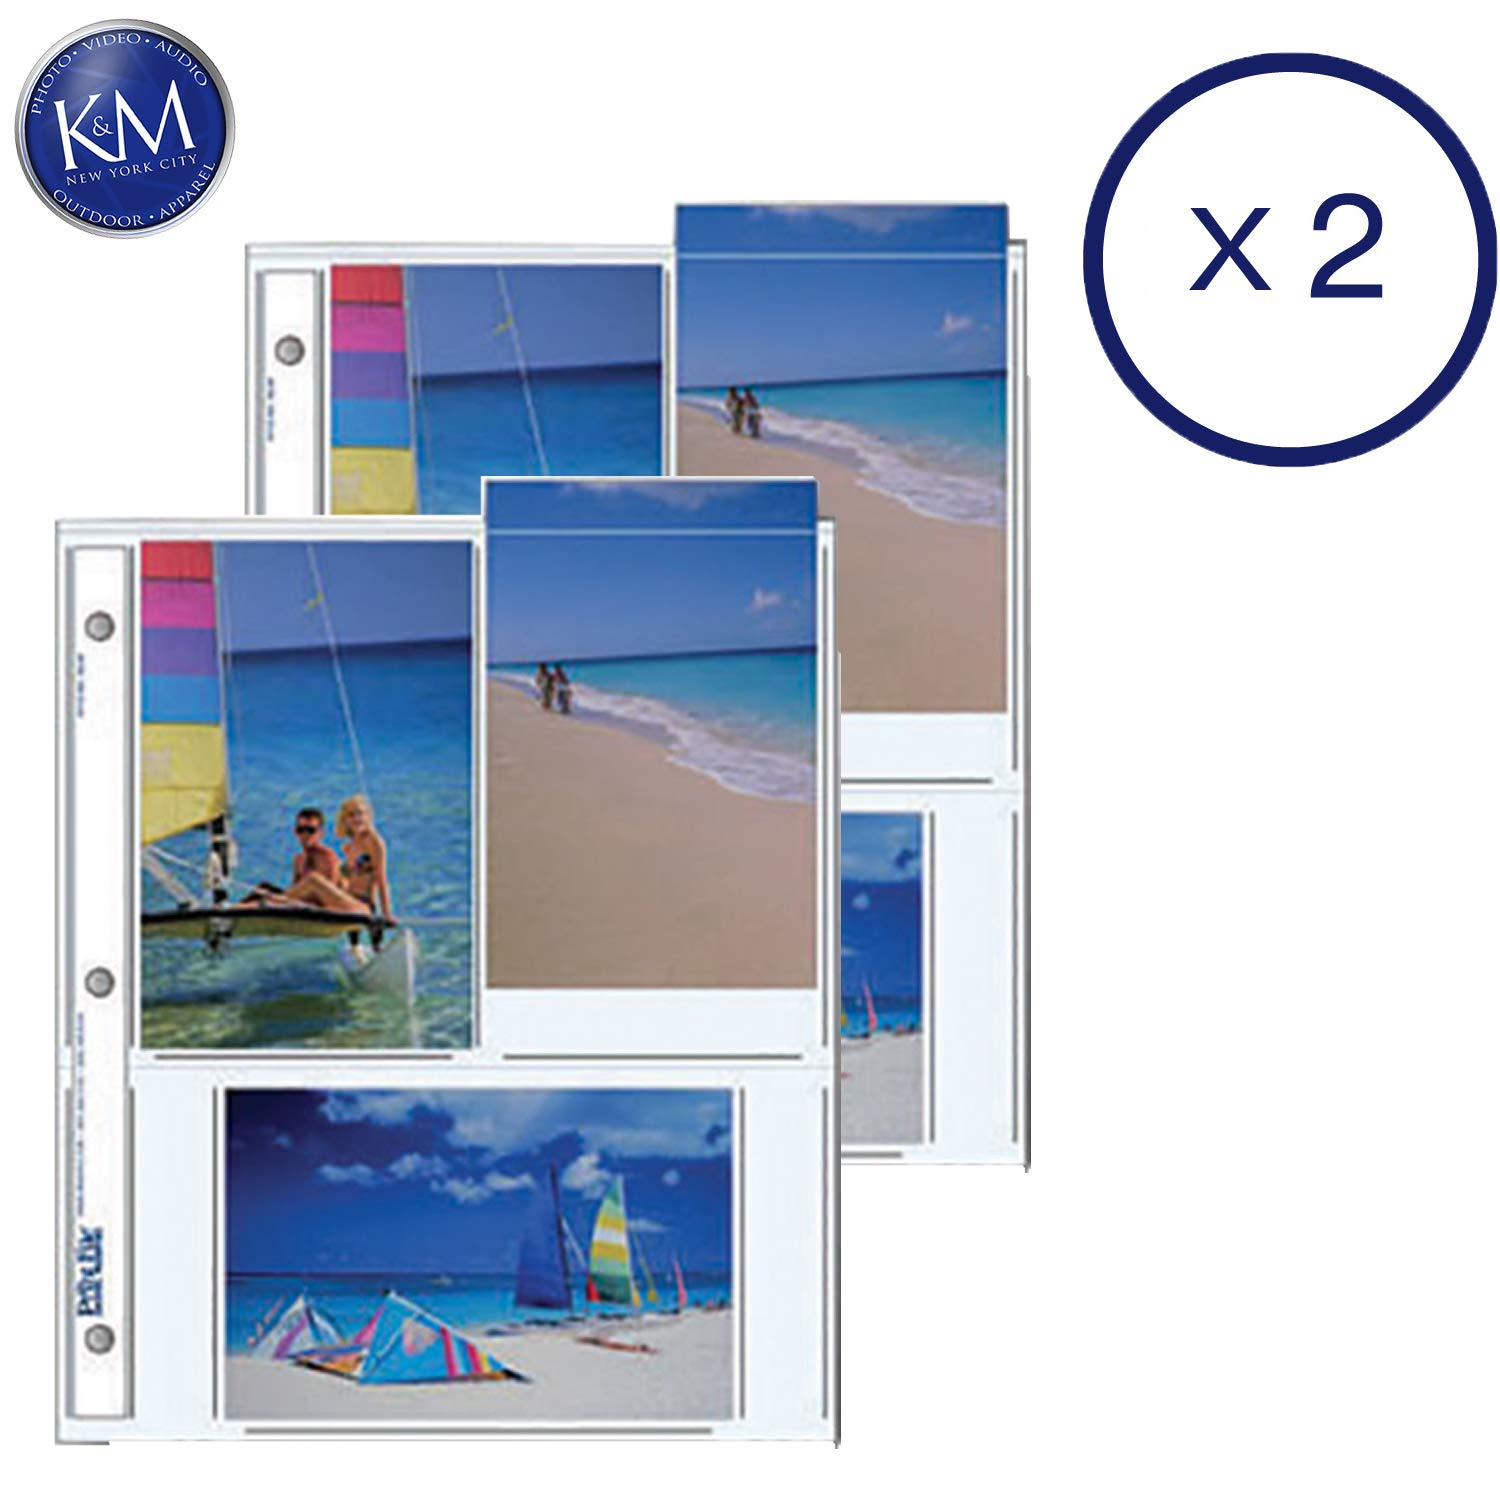 Print File Archival Storage Pages for Prints | 4 x 6, 6 Pockets - 25 Pack x 2 by Print File